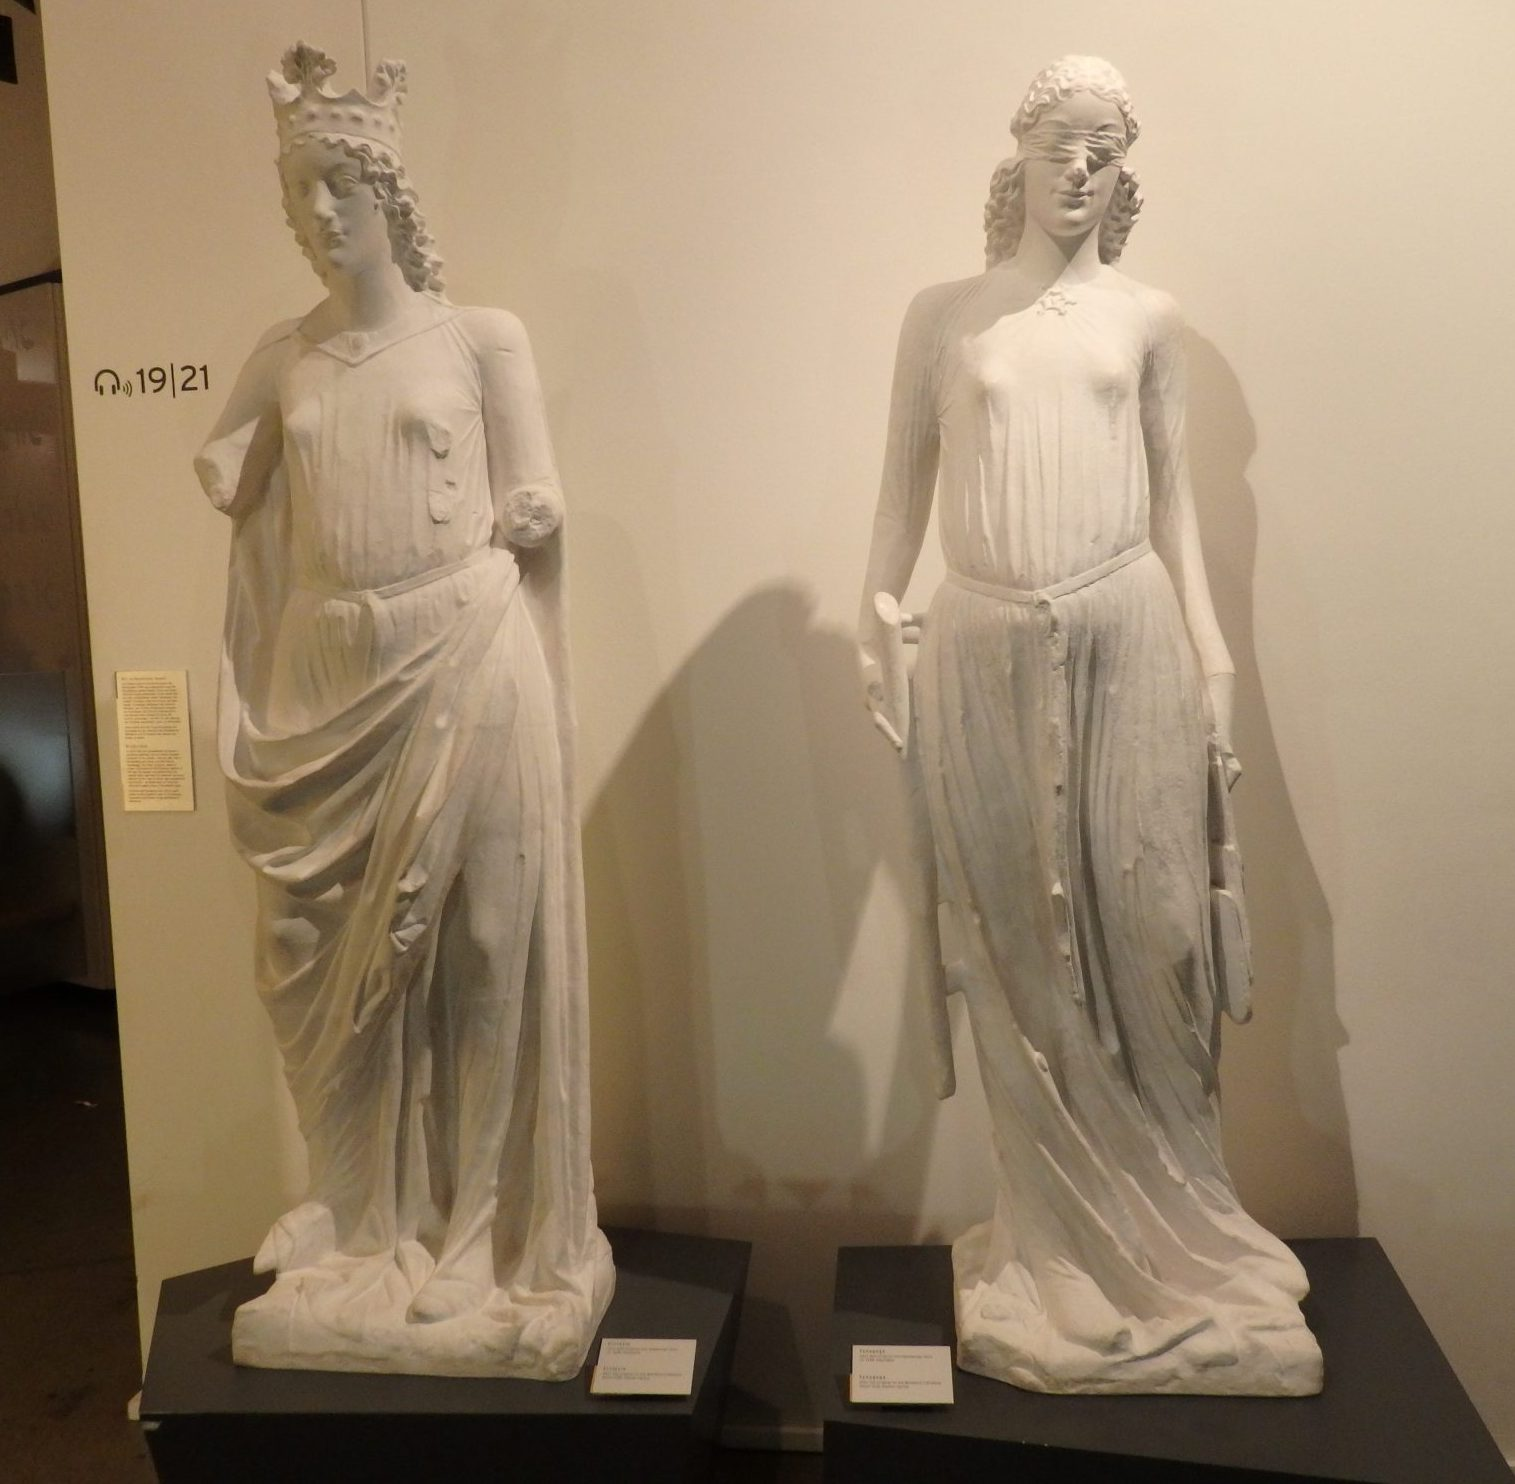 "medieval statues. According to the museum sign, Synagoga, right, representing Judaism, is ""blind to salvation and thus inferior to her rival Ecclesia, left, who symbolized the Church."" Shows Christian attitudes toward Jews in the Middle Ages."